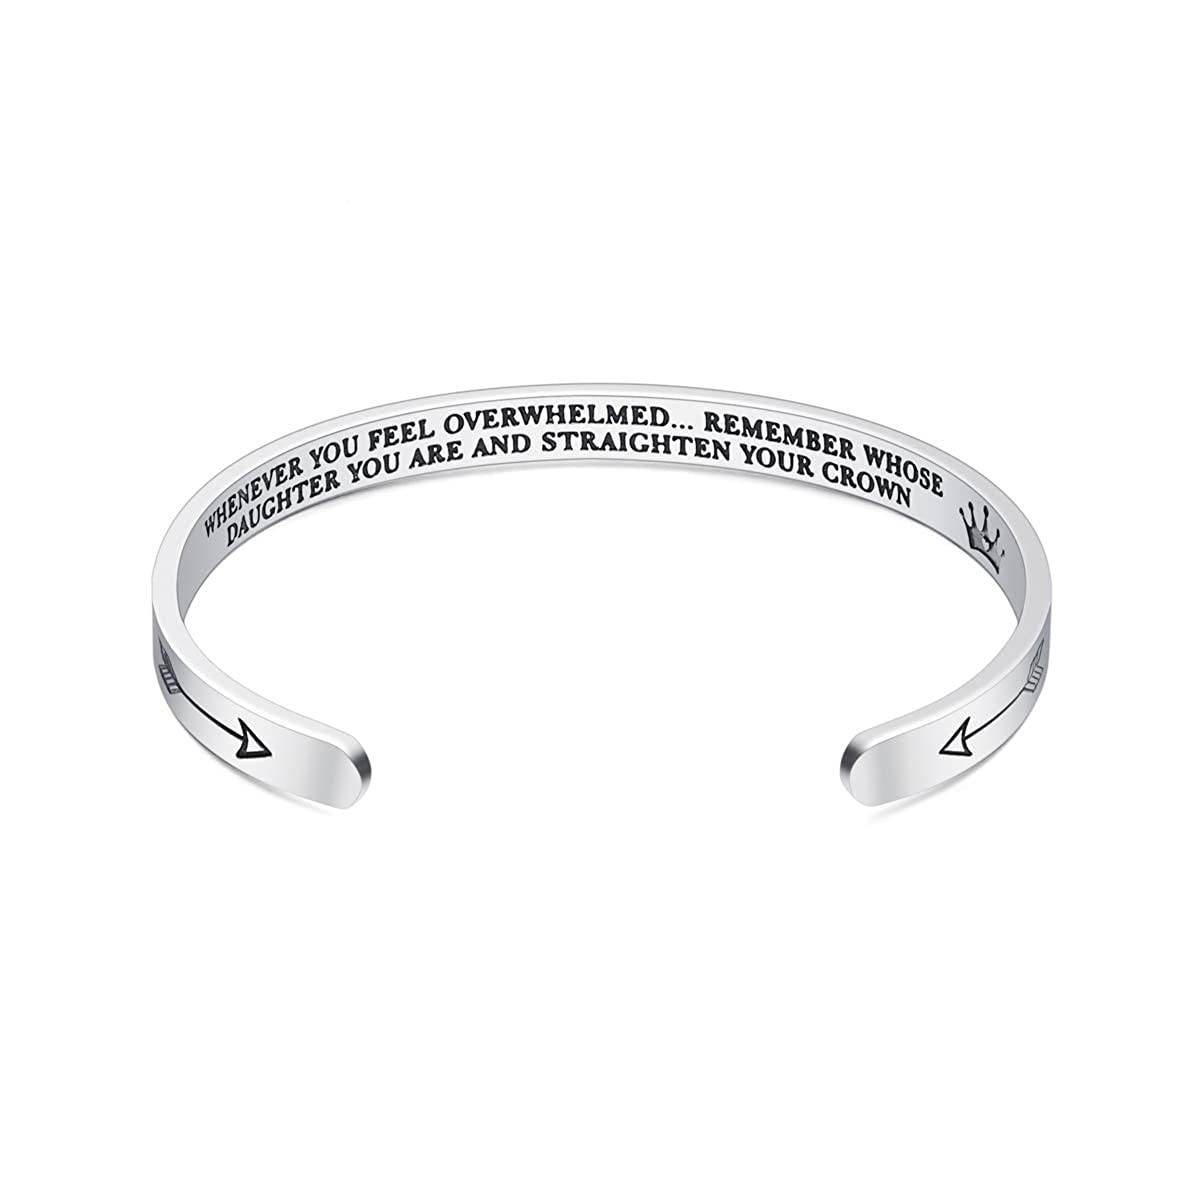 Smile Way Whenever You Feel Overwhelmed Remember Whose Daughter You are and Straighten Your Crown Cuff Bracelet for Women Daughter Teen Girls